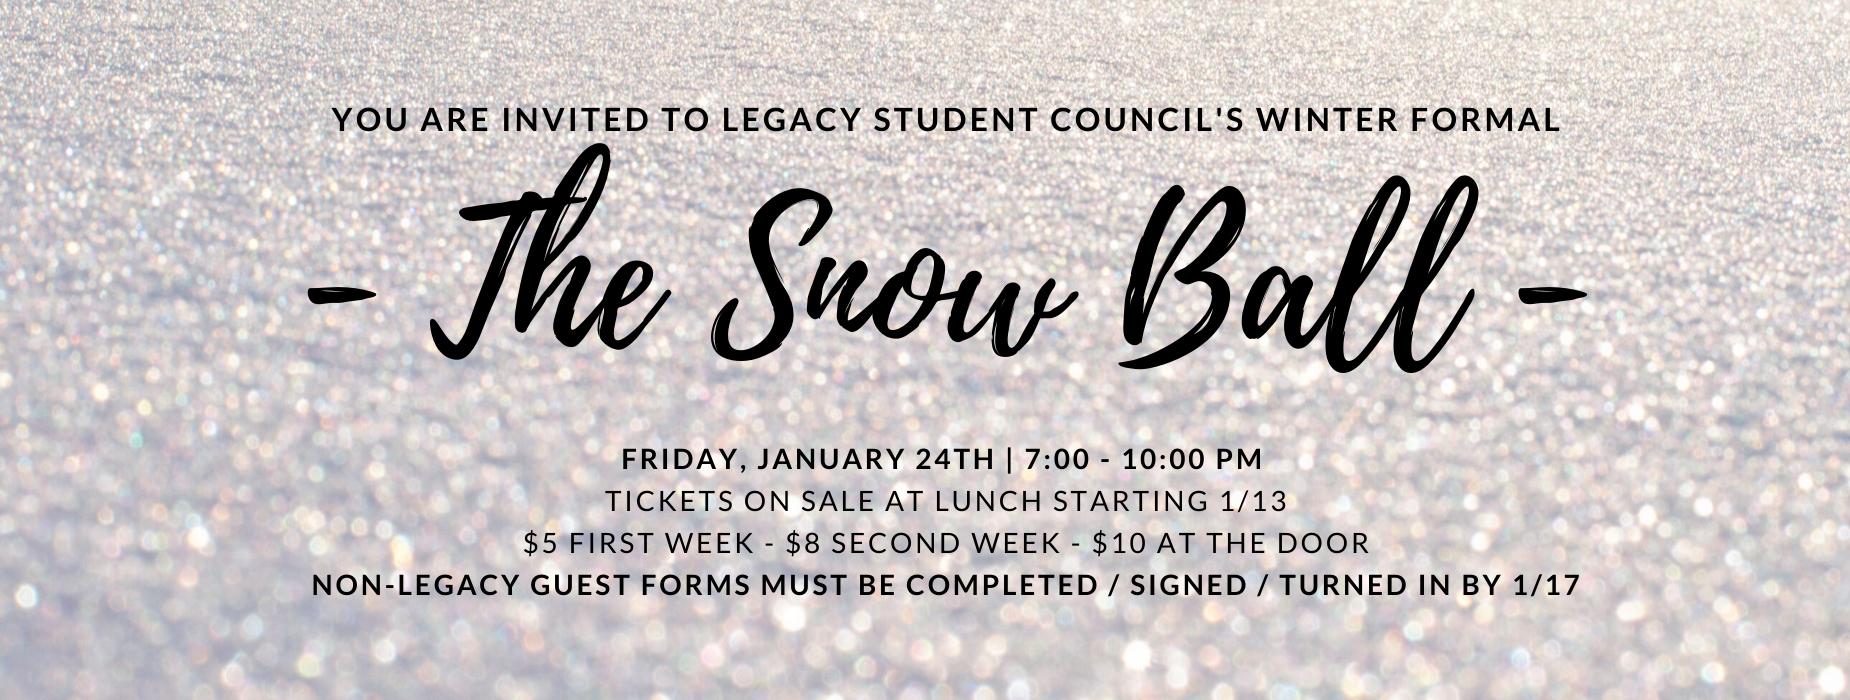 Legacy Winter Formal - The Snow Ball, Friday, January 24, 7-10PM